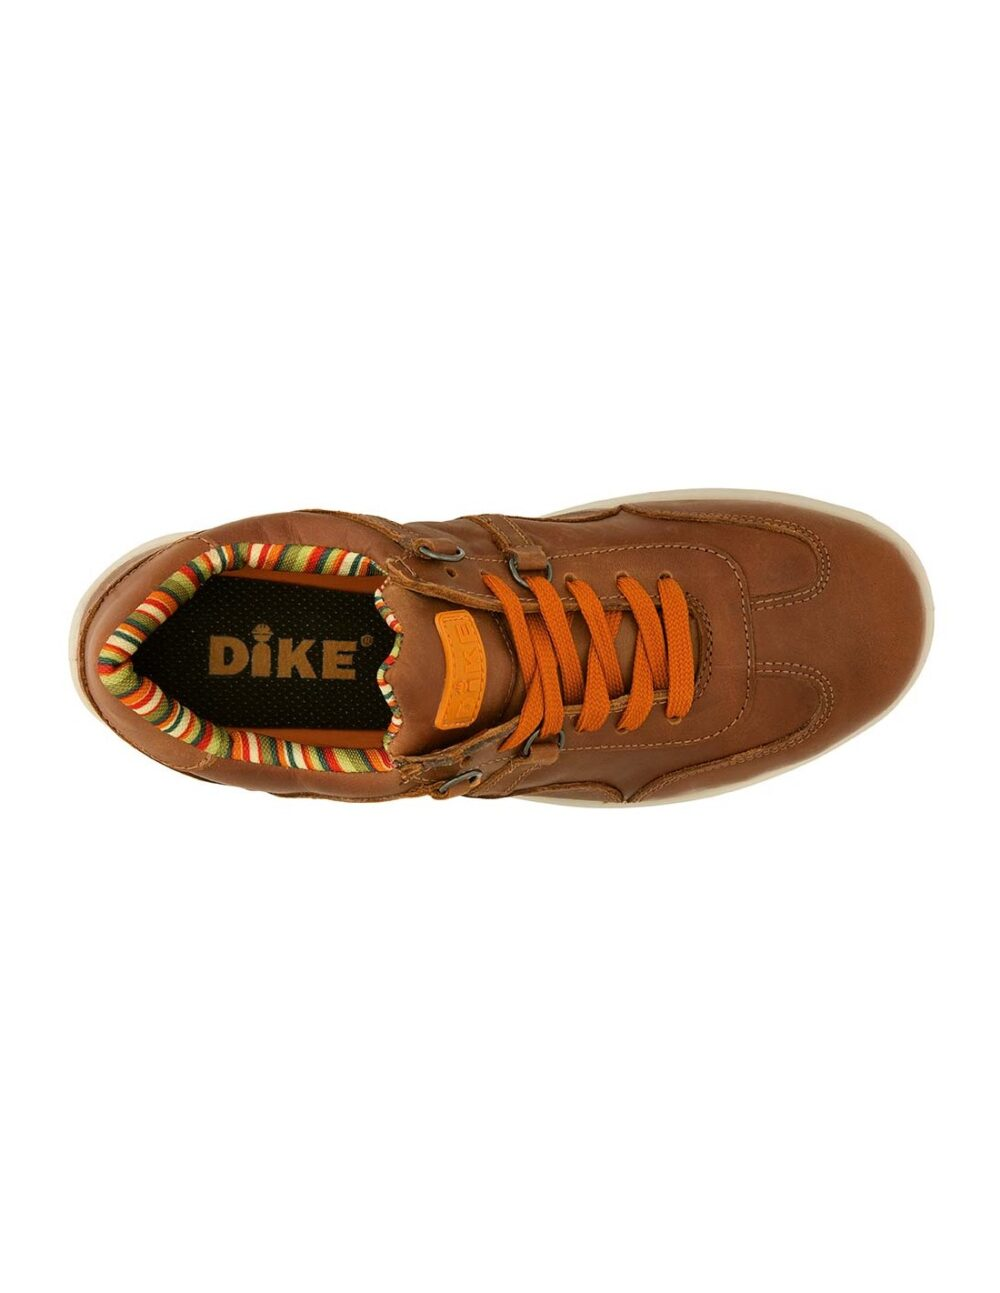 Brown raving safety shoe by dike